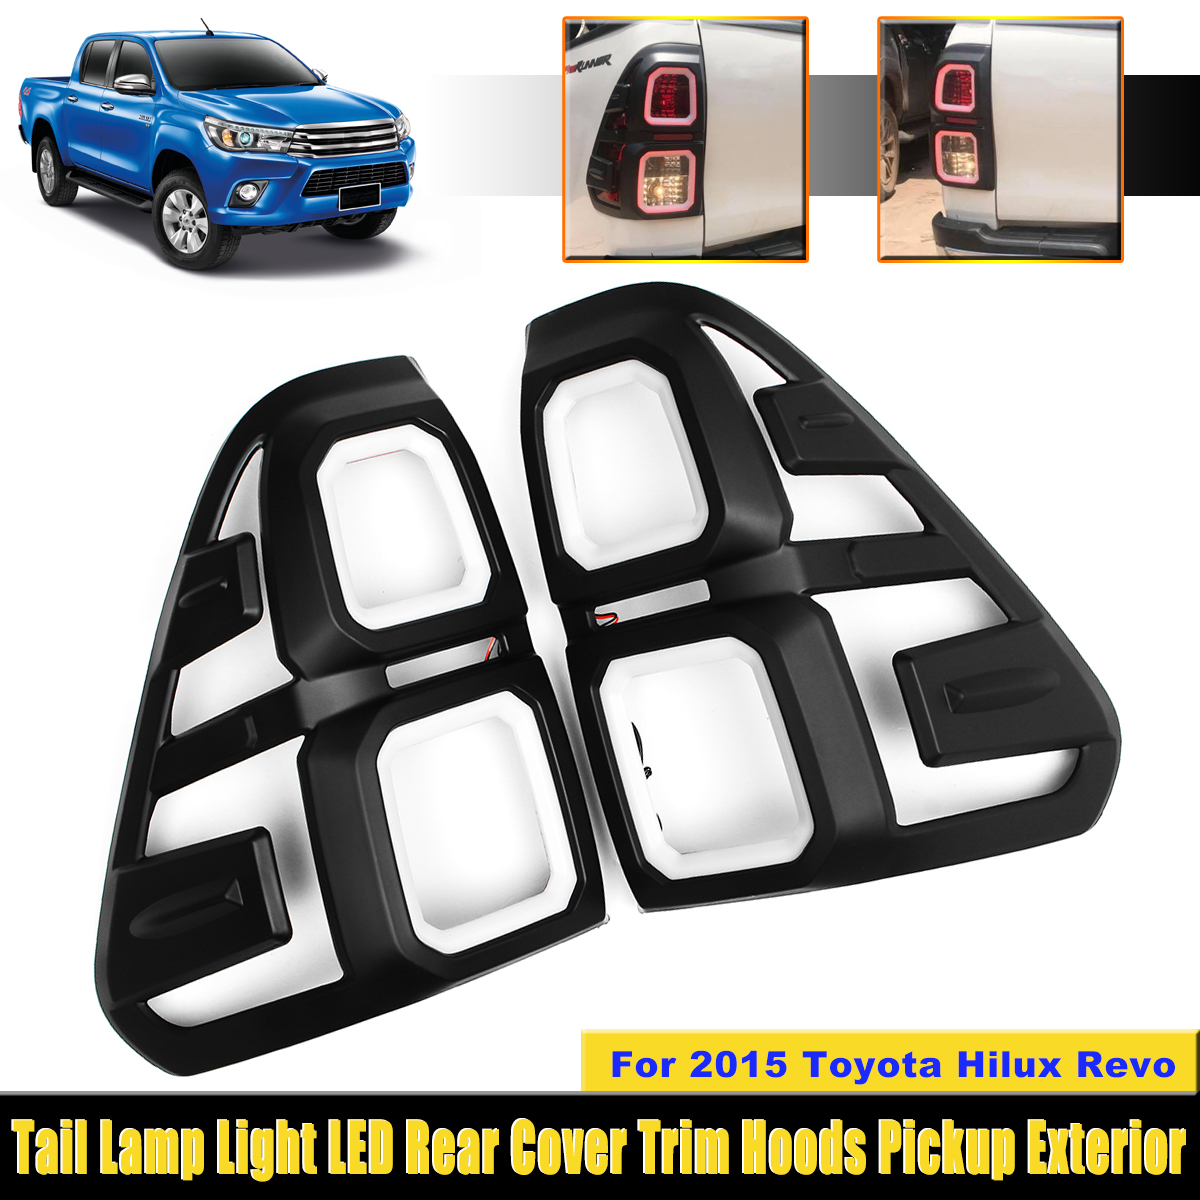 LED Rear Tail Lamp Lights Cover For Toyota Hilux Revo 2015 LED Lamp Hoods Brake Lights Trim Hoods Pickup Auto Accessories